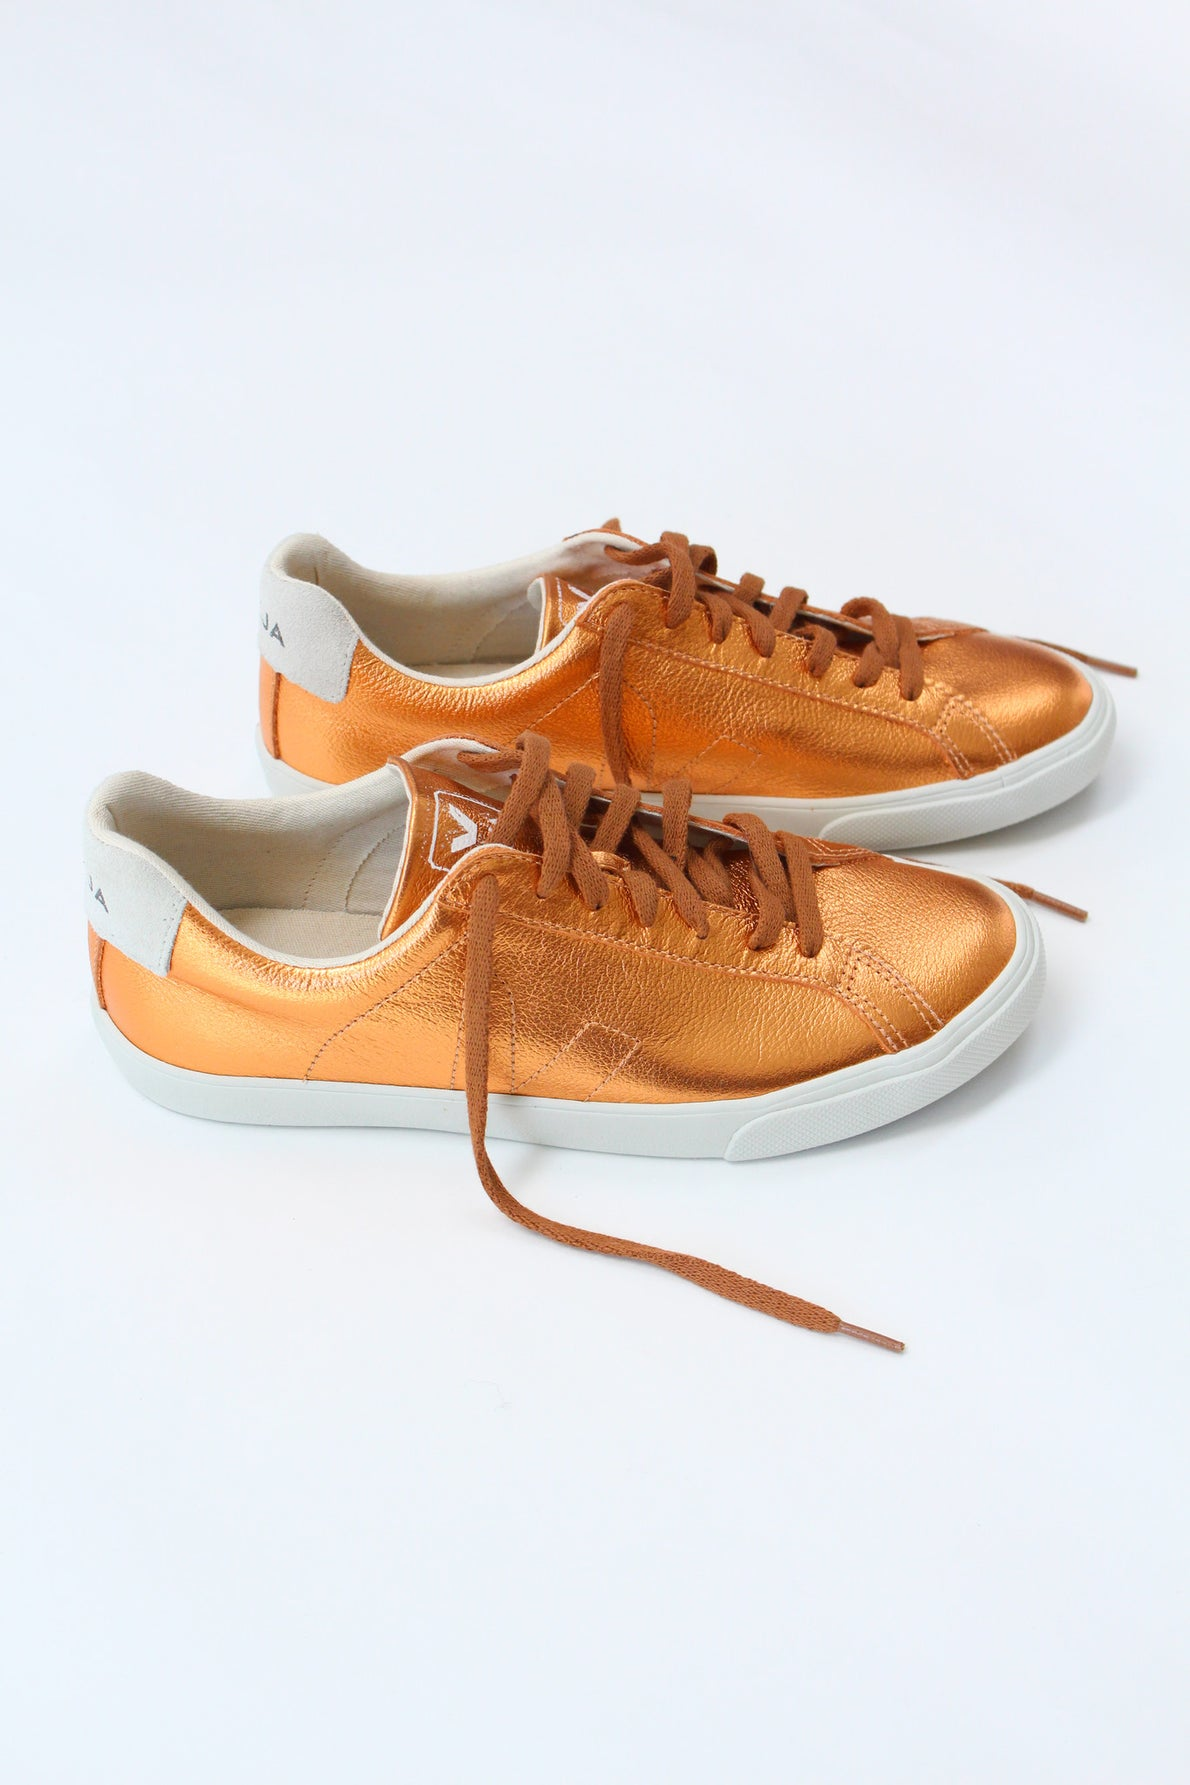 Beklina Veja Esplar Leather Copper Sneaker